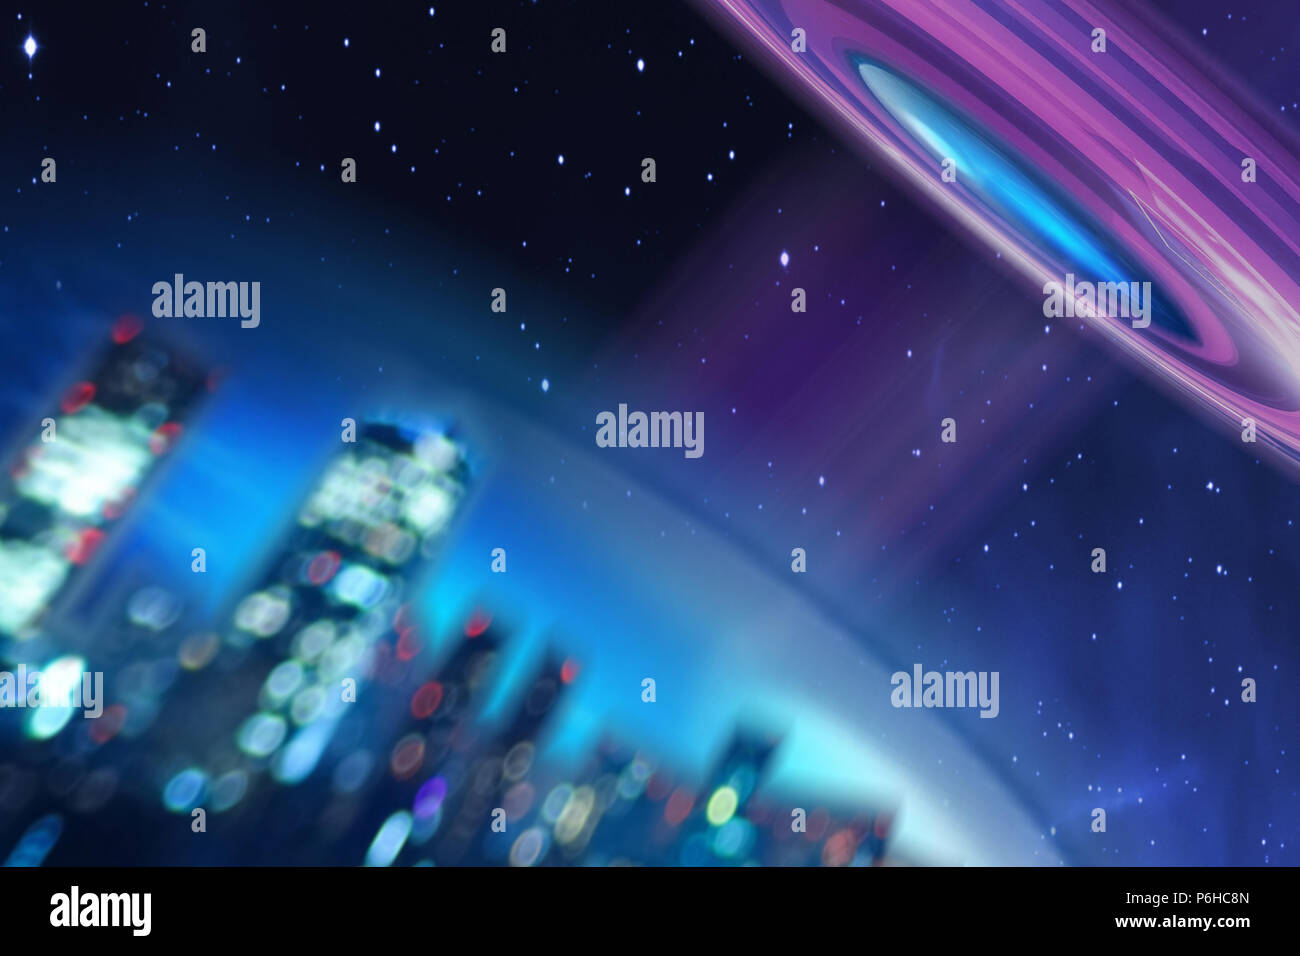 Conceptual illustration of a flying saucer or UFO flying over the Earth and directing its beam. Extraterrestrial intrusion or extraterrestrial contact - Stock Image